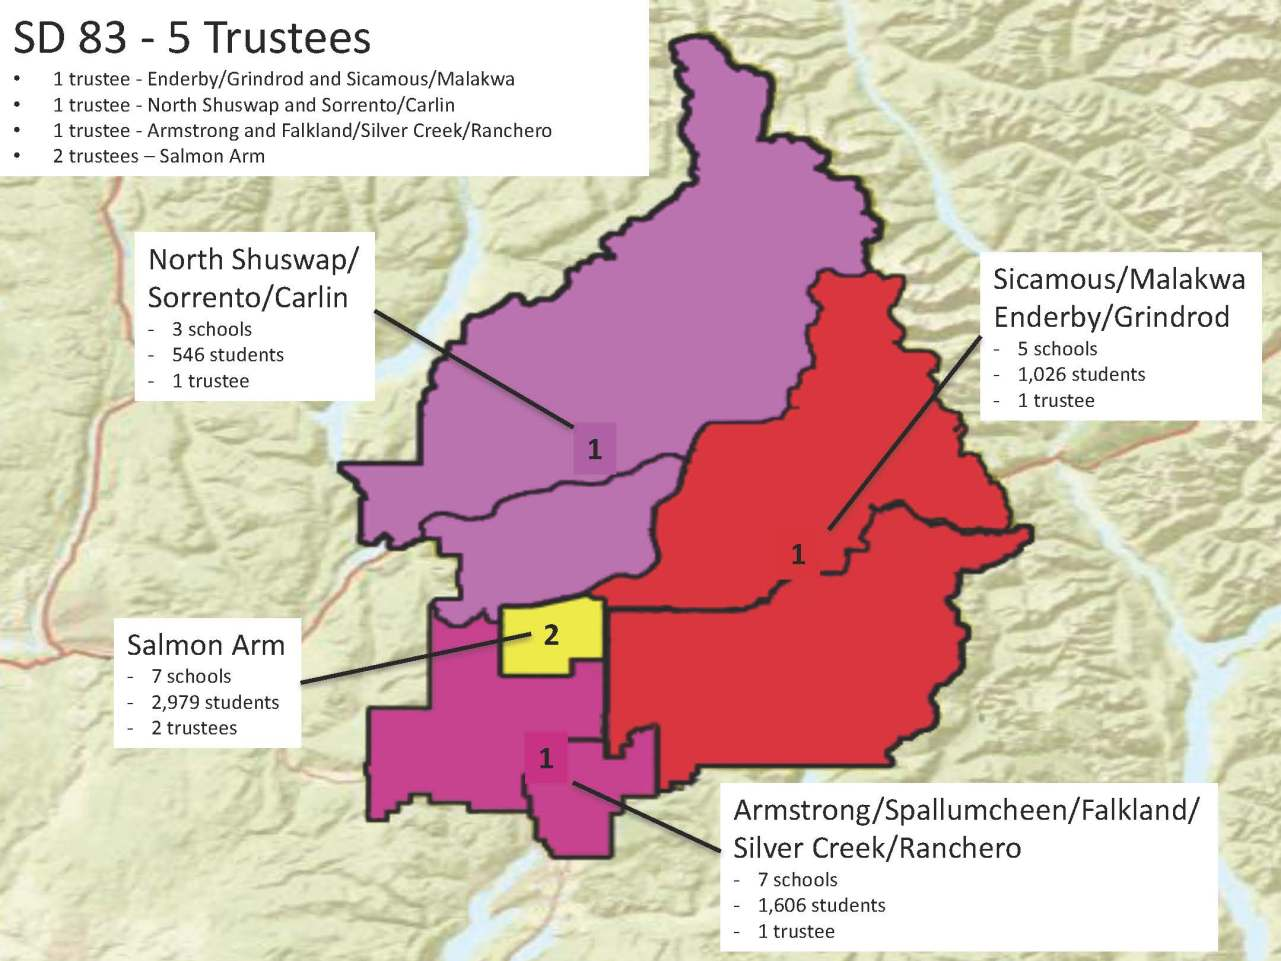 Final Approved Trustee Variation - 5 Trustees